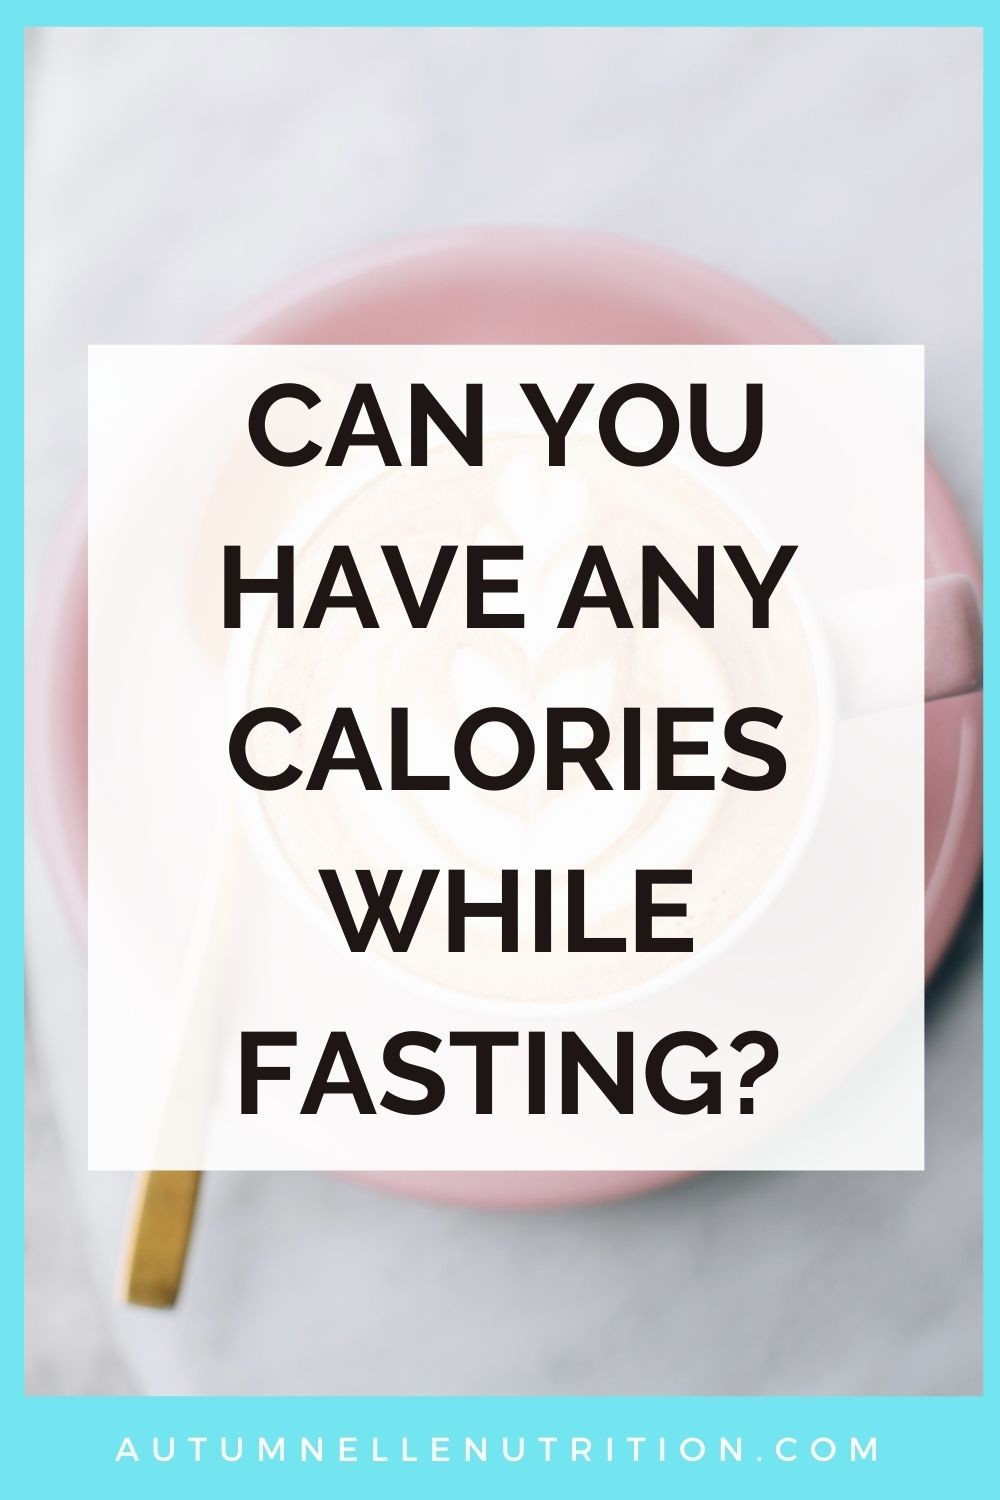 can you have any calories while fasting